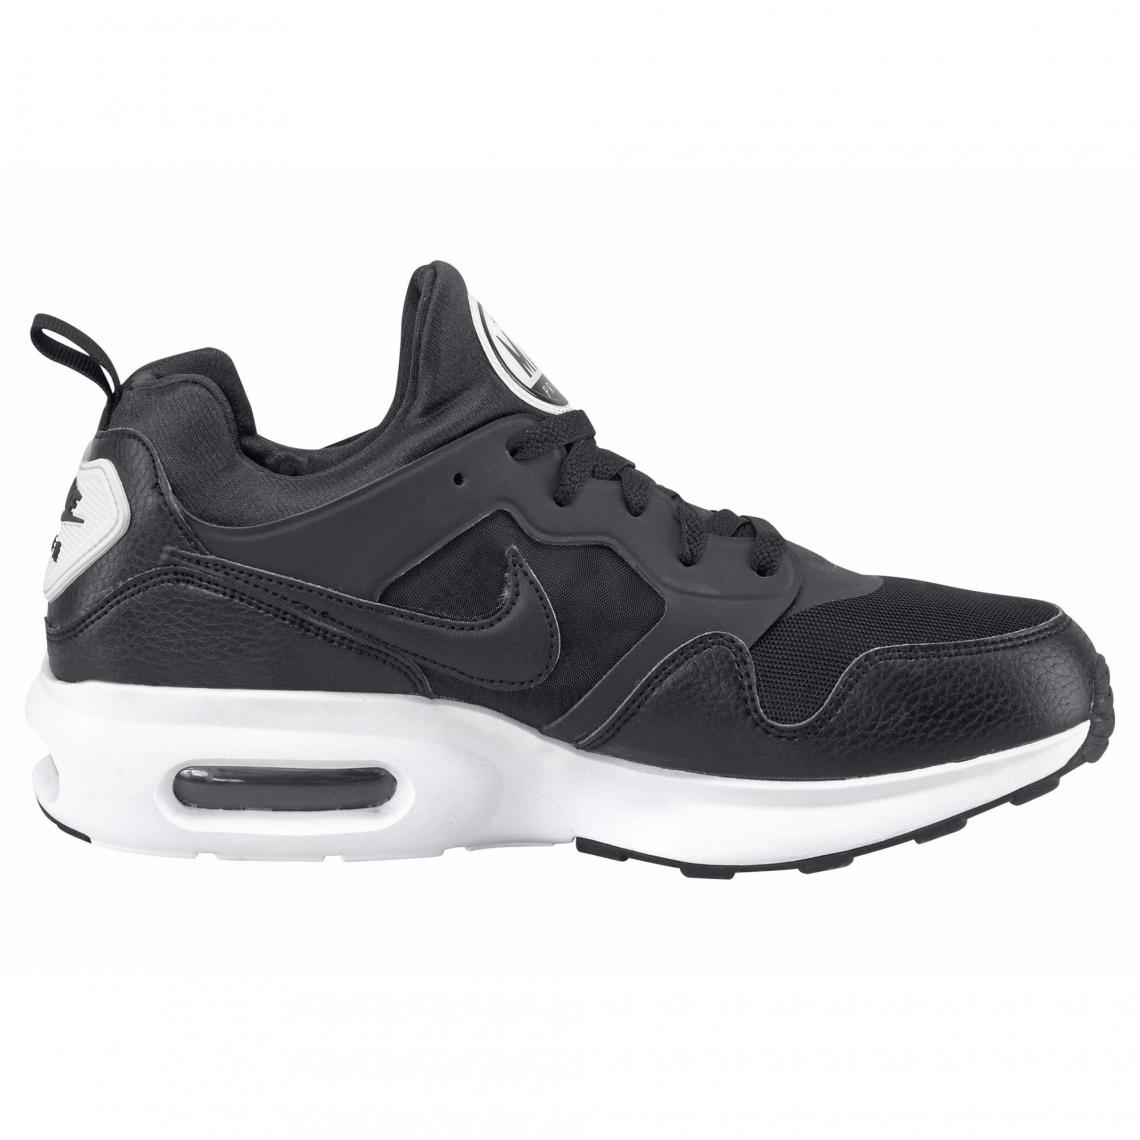 best service a7e1f 93a23 Nike Air Max Prime chaussures running homme - Noir - Blanc Nike Homme